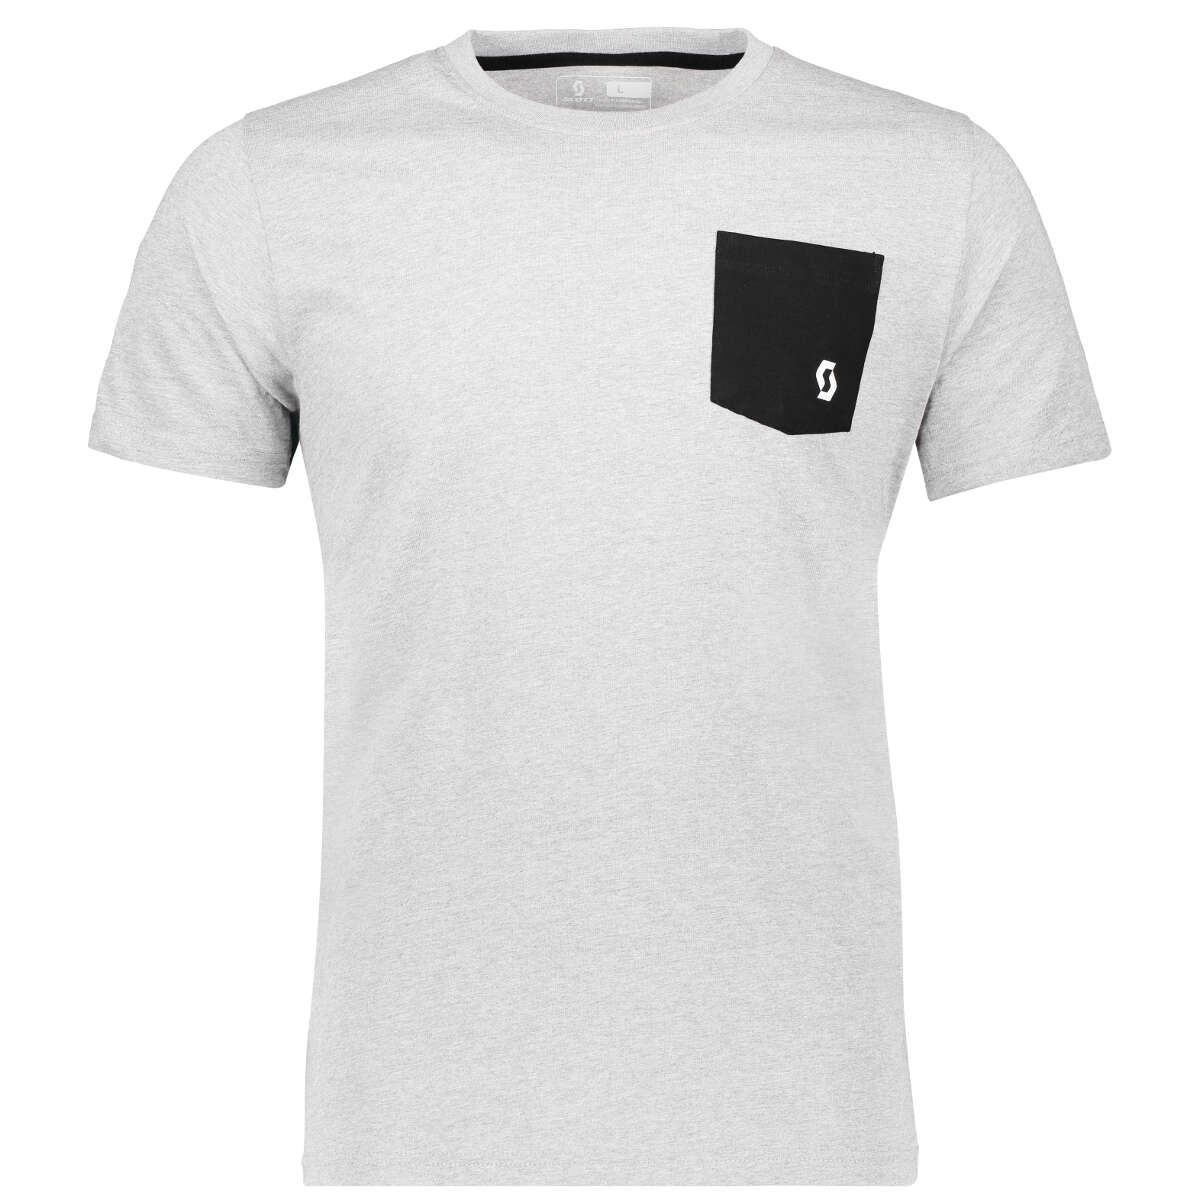 Scott T-Shirt 10 Casual Weiß